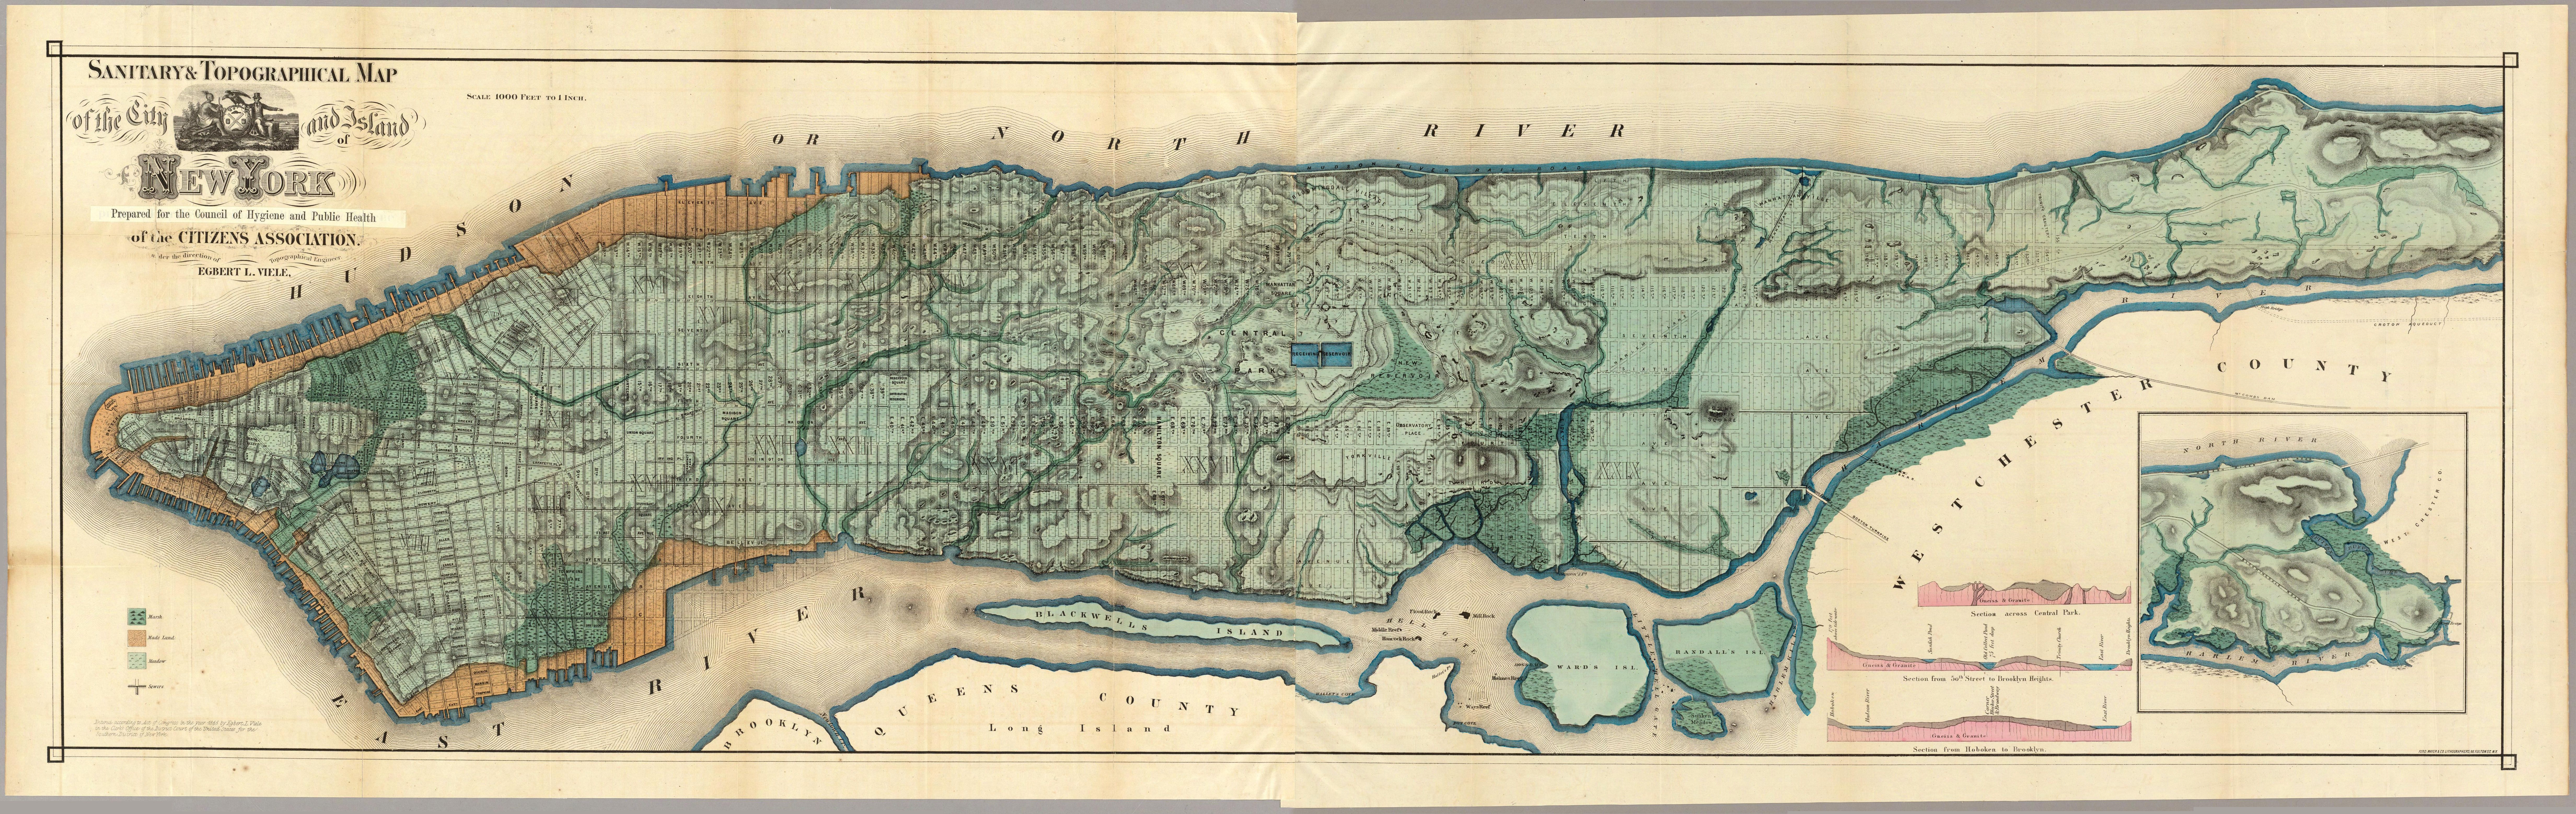 Map Of New York Waterways.Viele Map Of Manhattan A Map Drawn In 1865 Of The Original